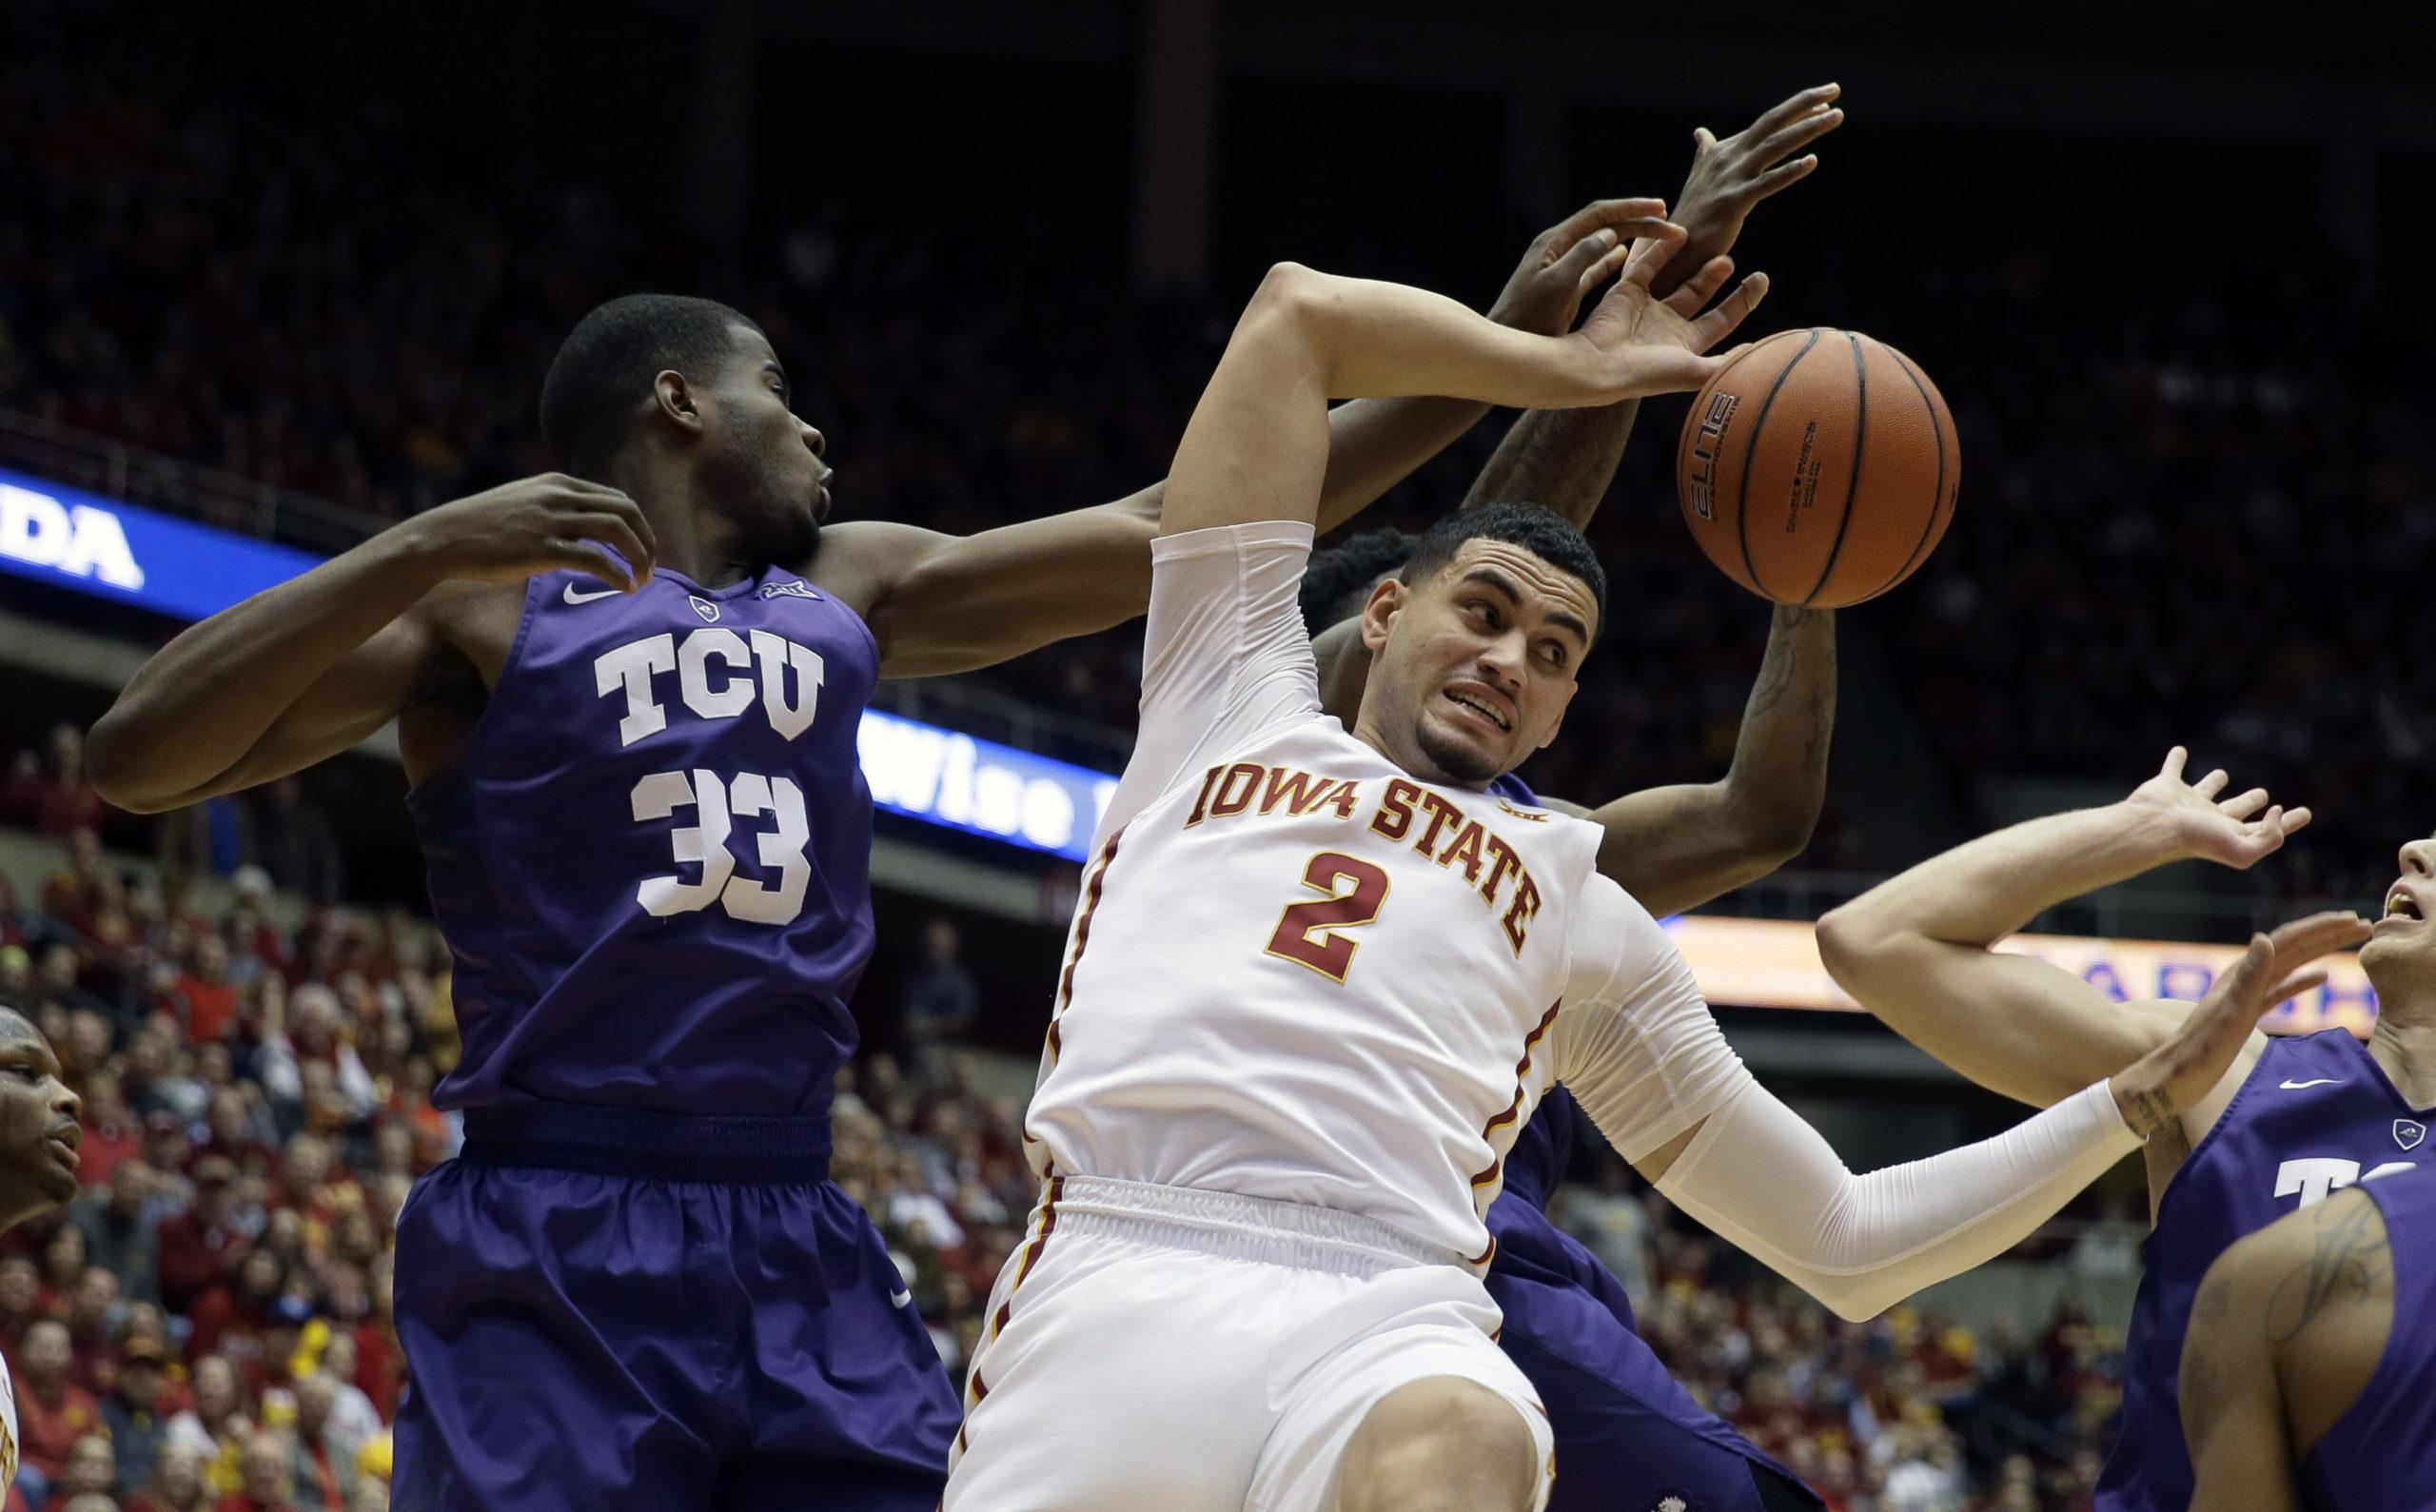 TCU forward Chris Washburn, left, fights for a rebound with Iowa State forward Abdel Nader (2) on Feb. 20.